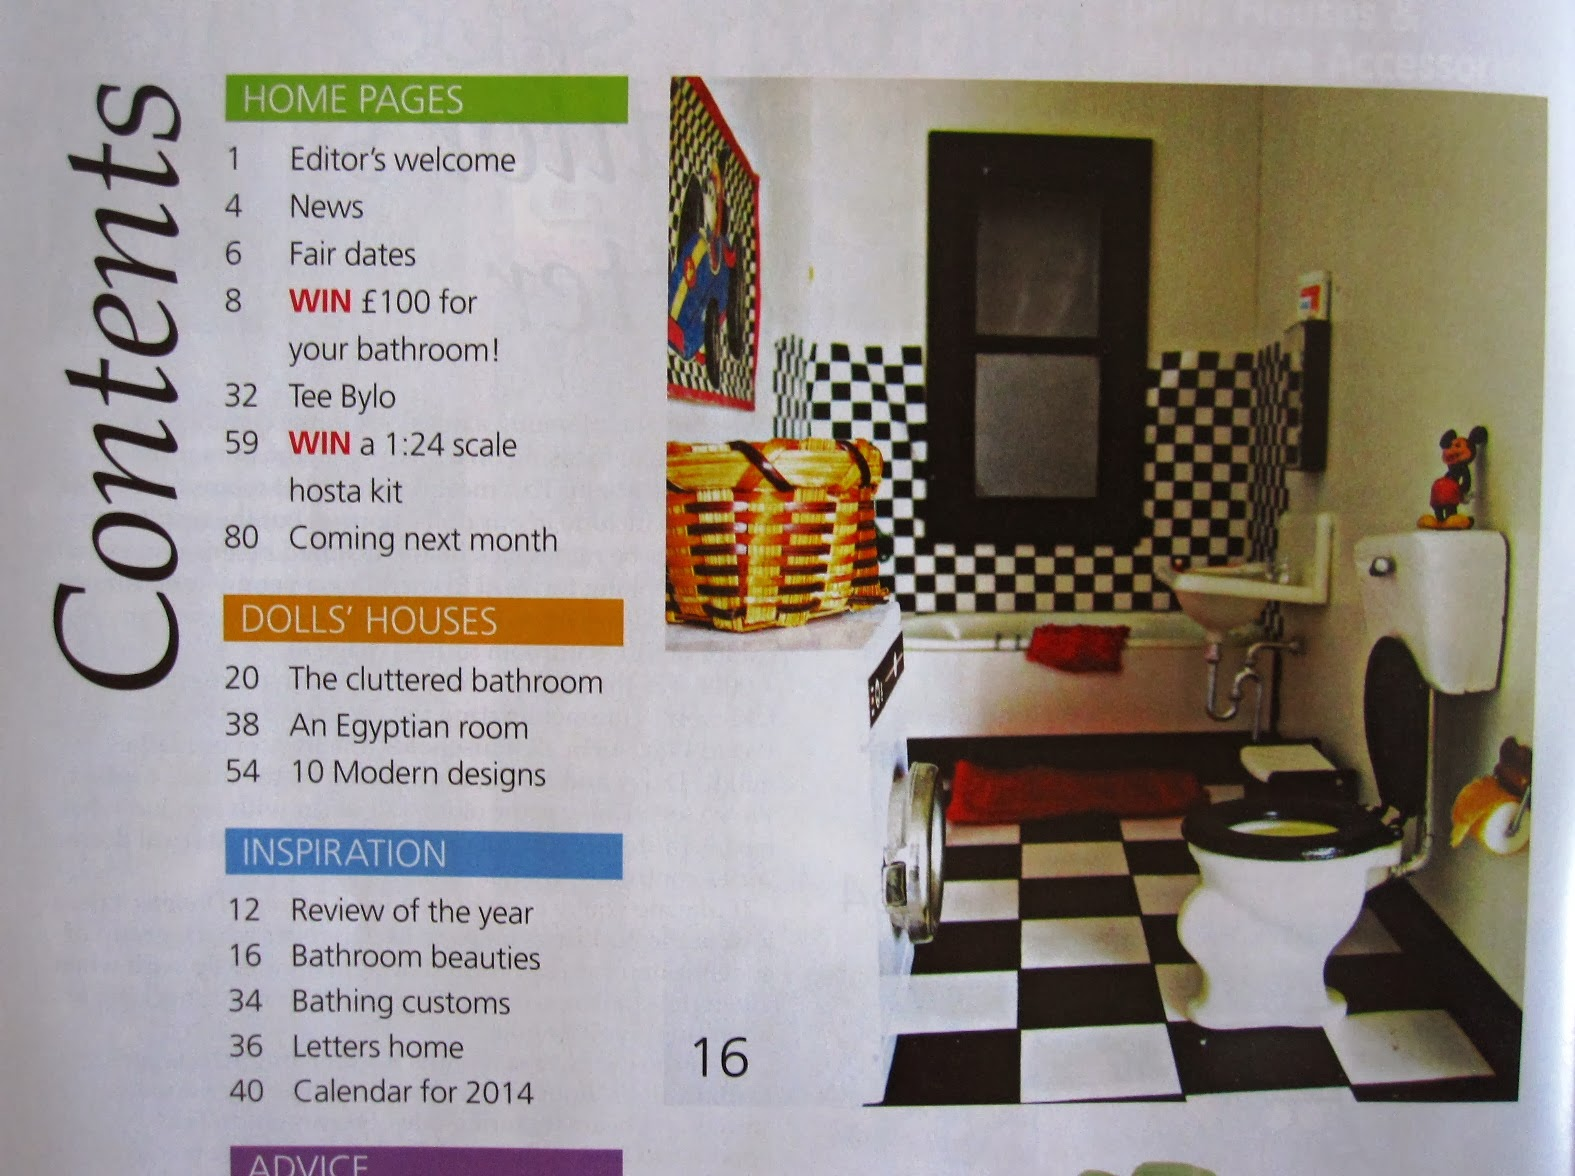 Contents page of the January 2014 issue of The Dolls' House Magazine showing a picture of my miniature Mickey bathroom